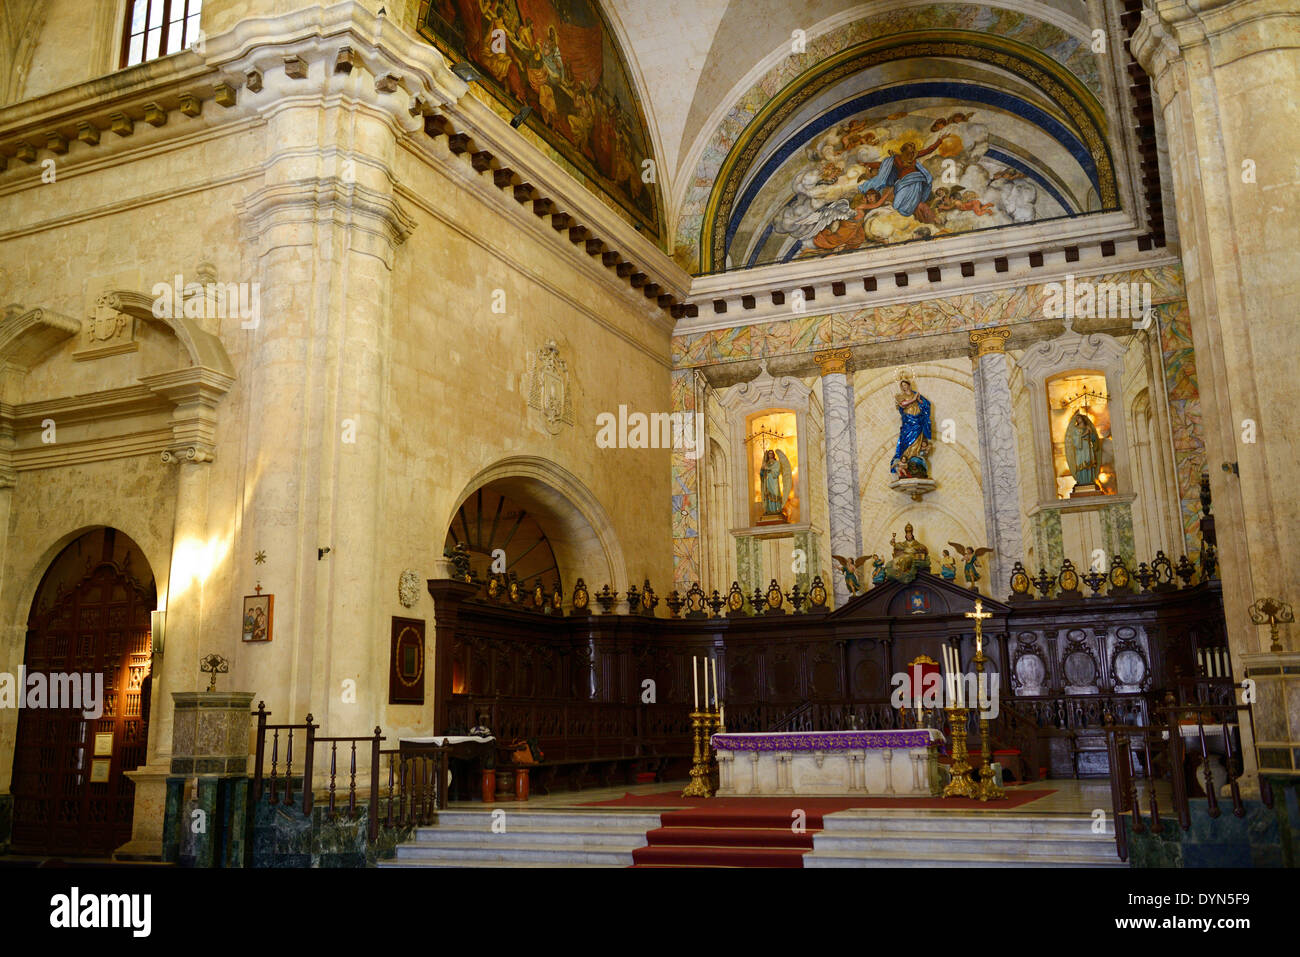 Catholic Church Altar Stock Photos Amp Catholic Church Altar Stock Images